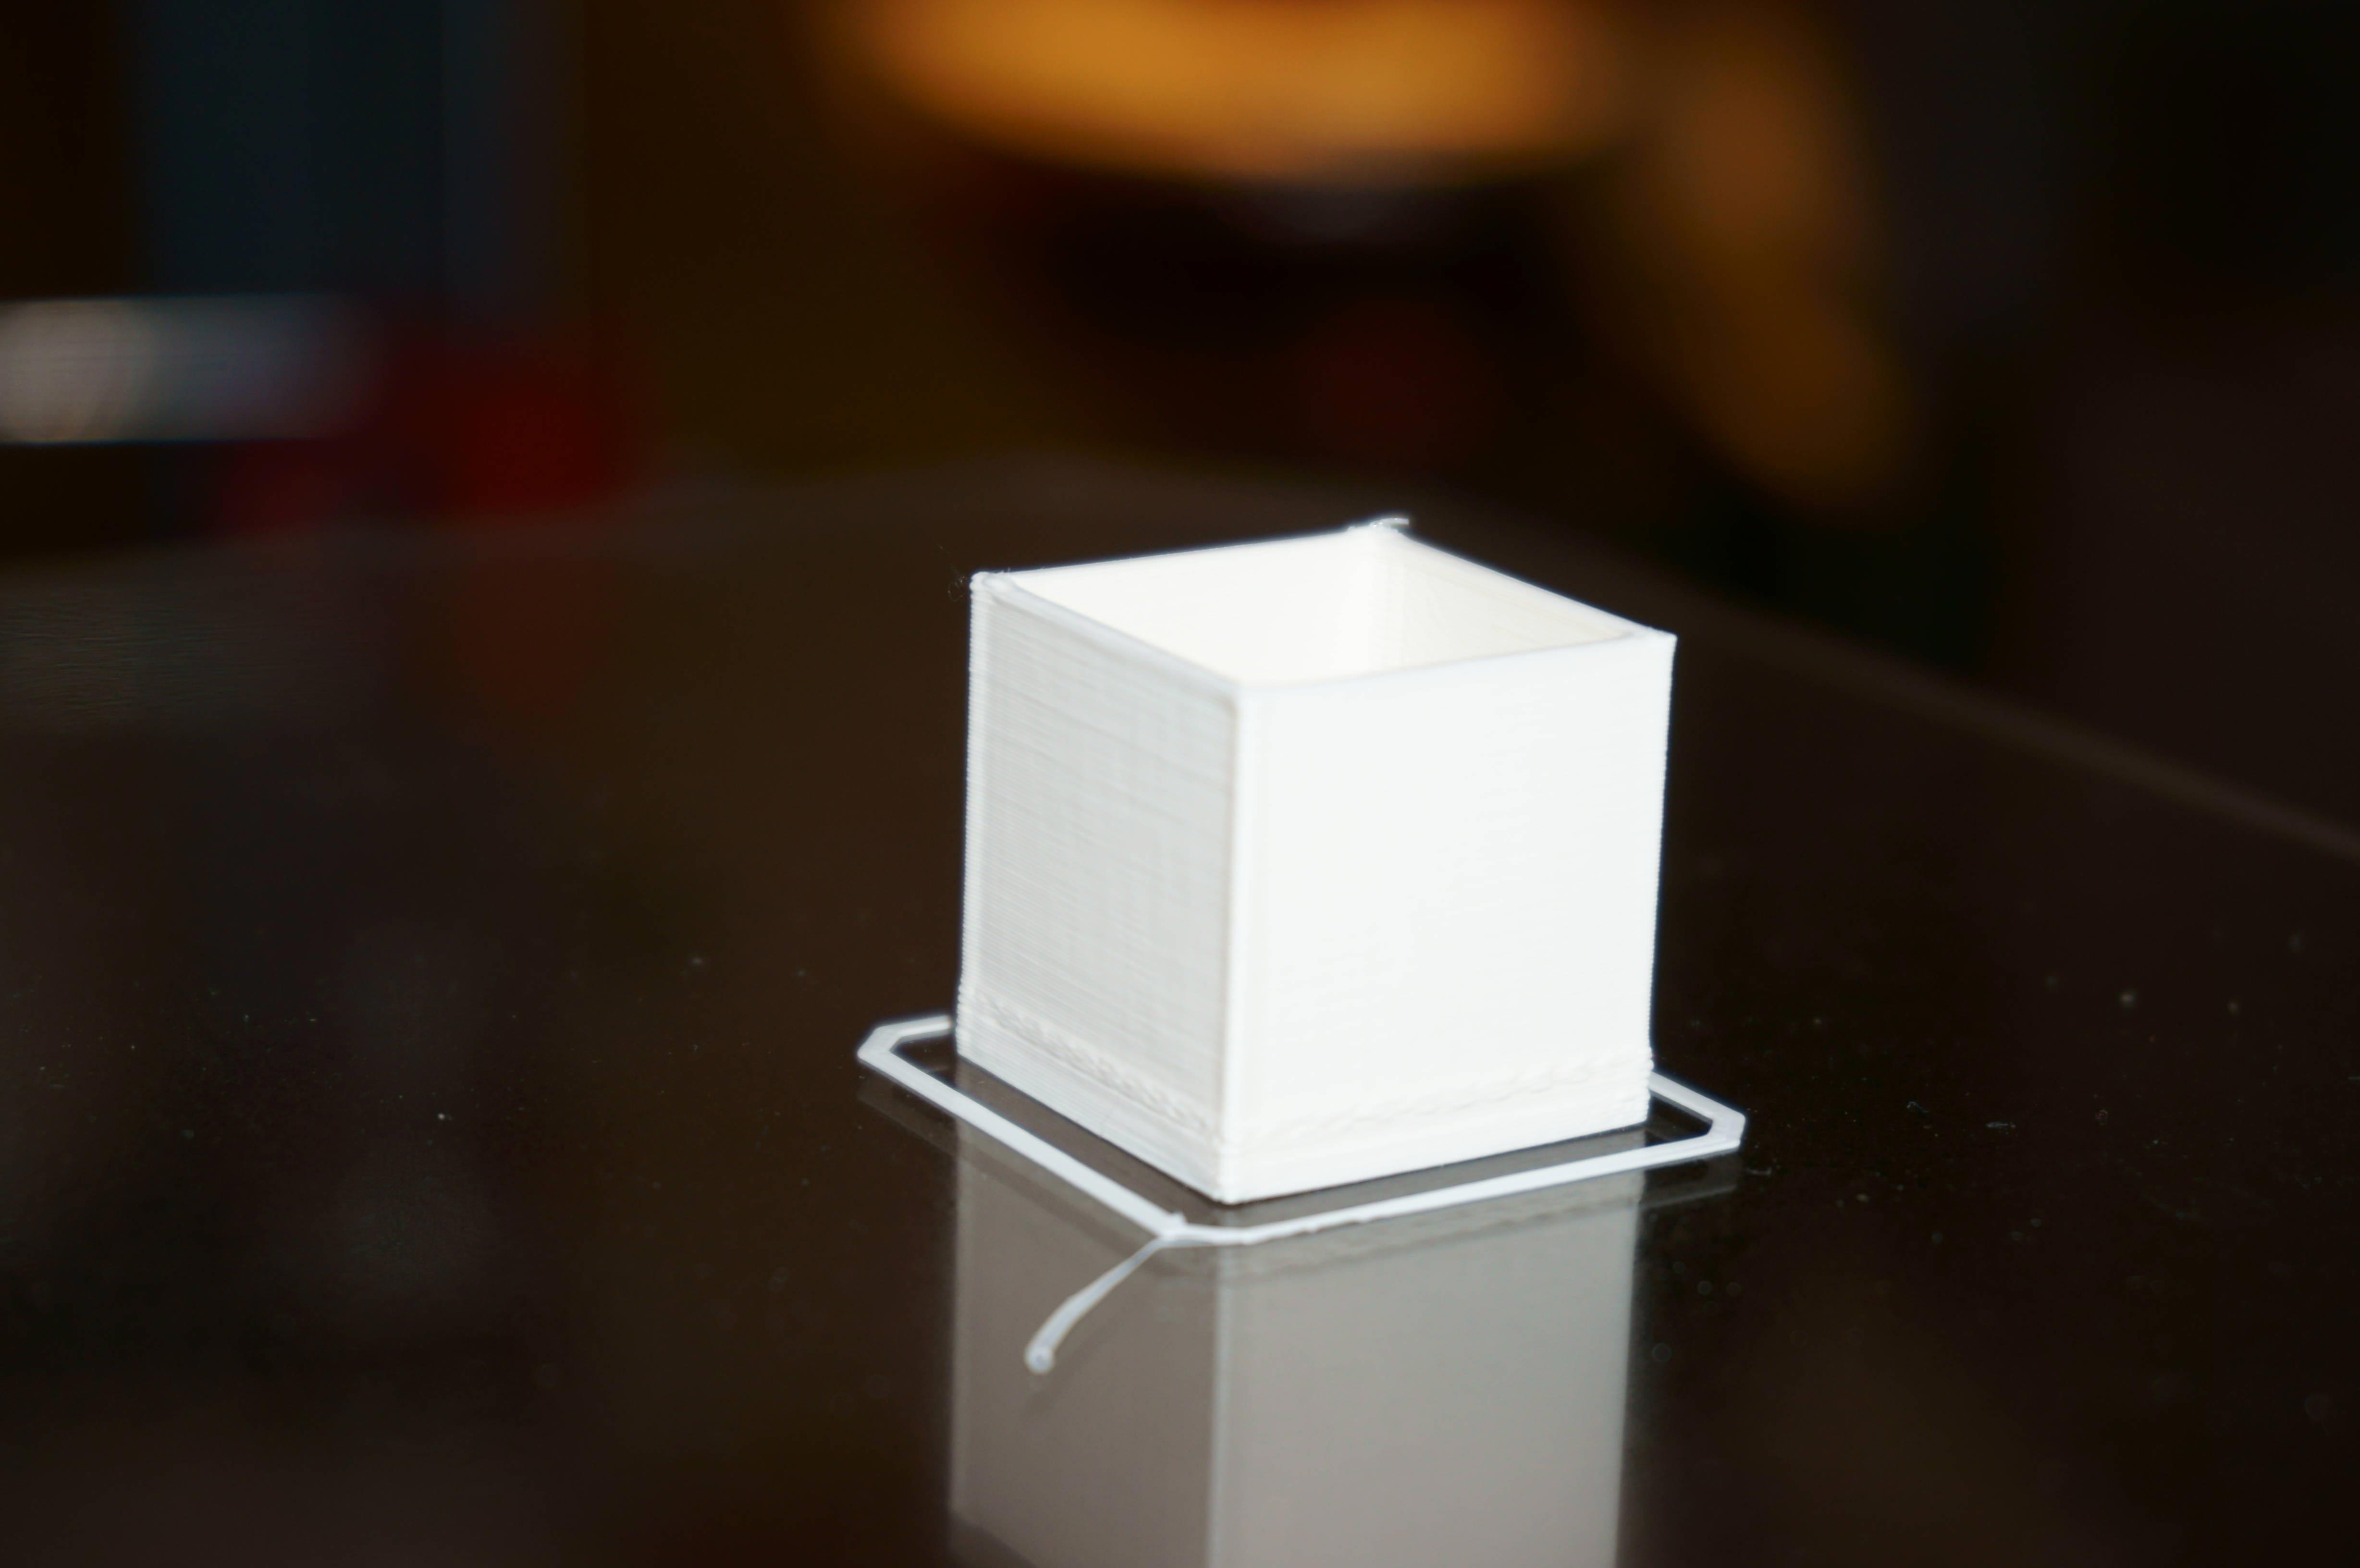 cubetest1.jpg